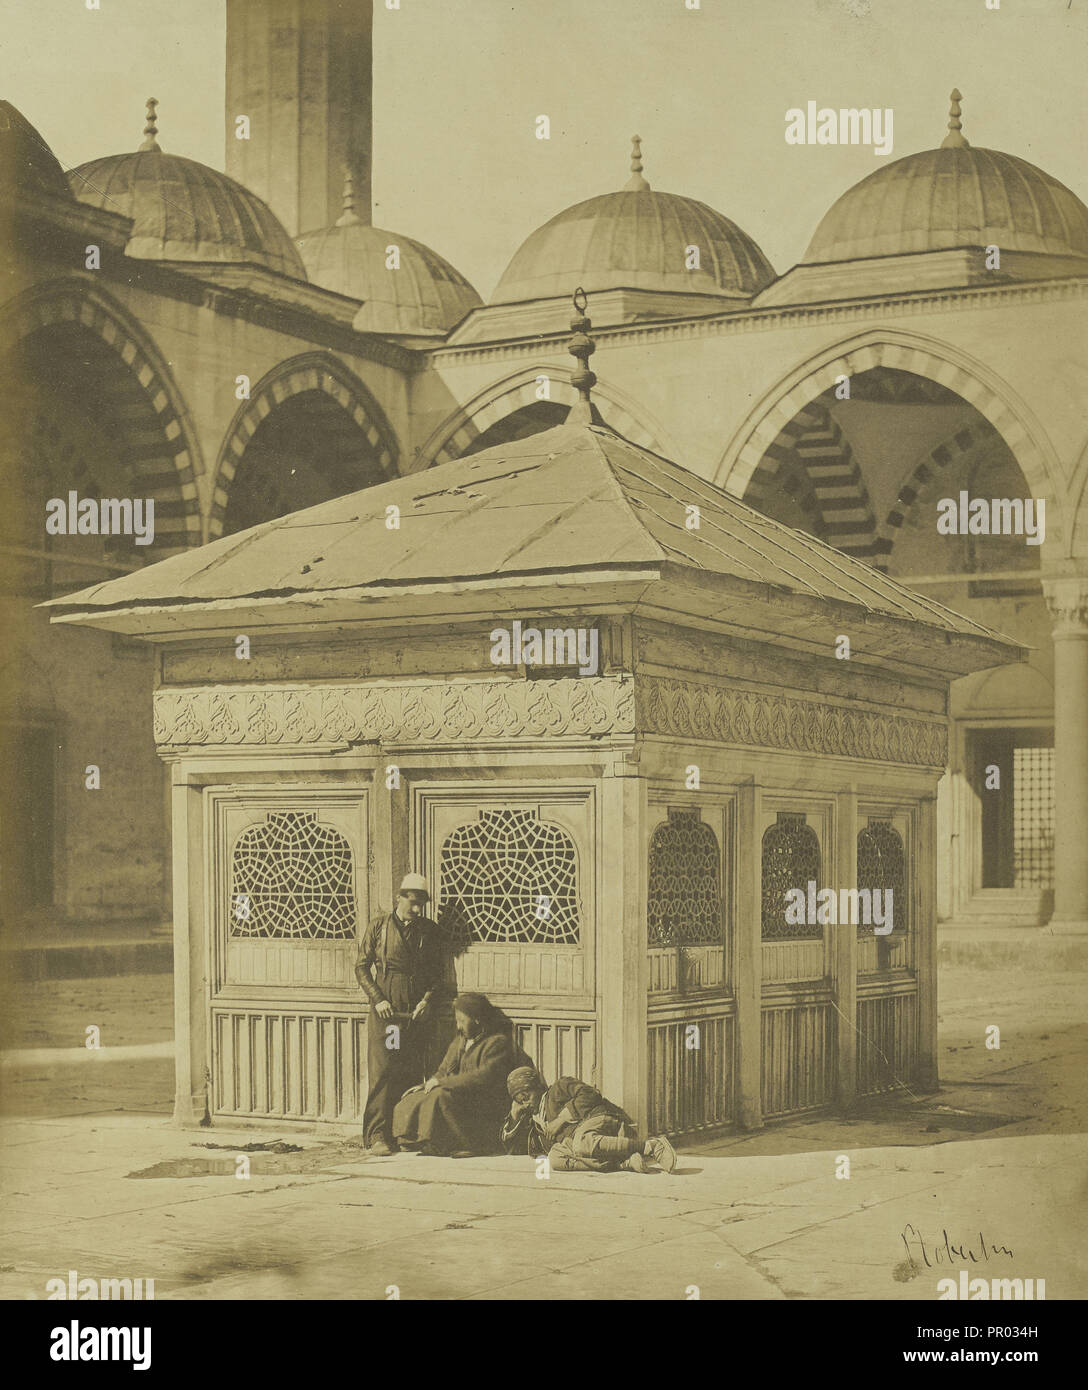 Fountain in the Court of the Sulimanijeh; James Robertson, English, 1813 - 1888, London, England; 1853; Salted paper print; 28. - Stock Image